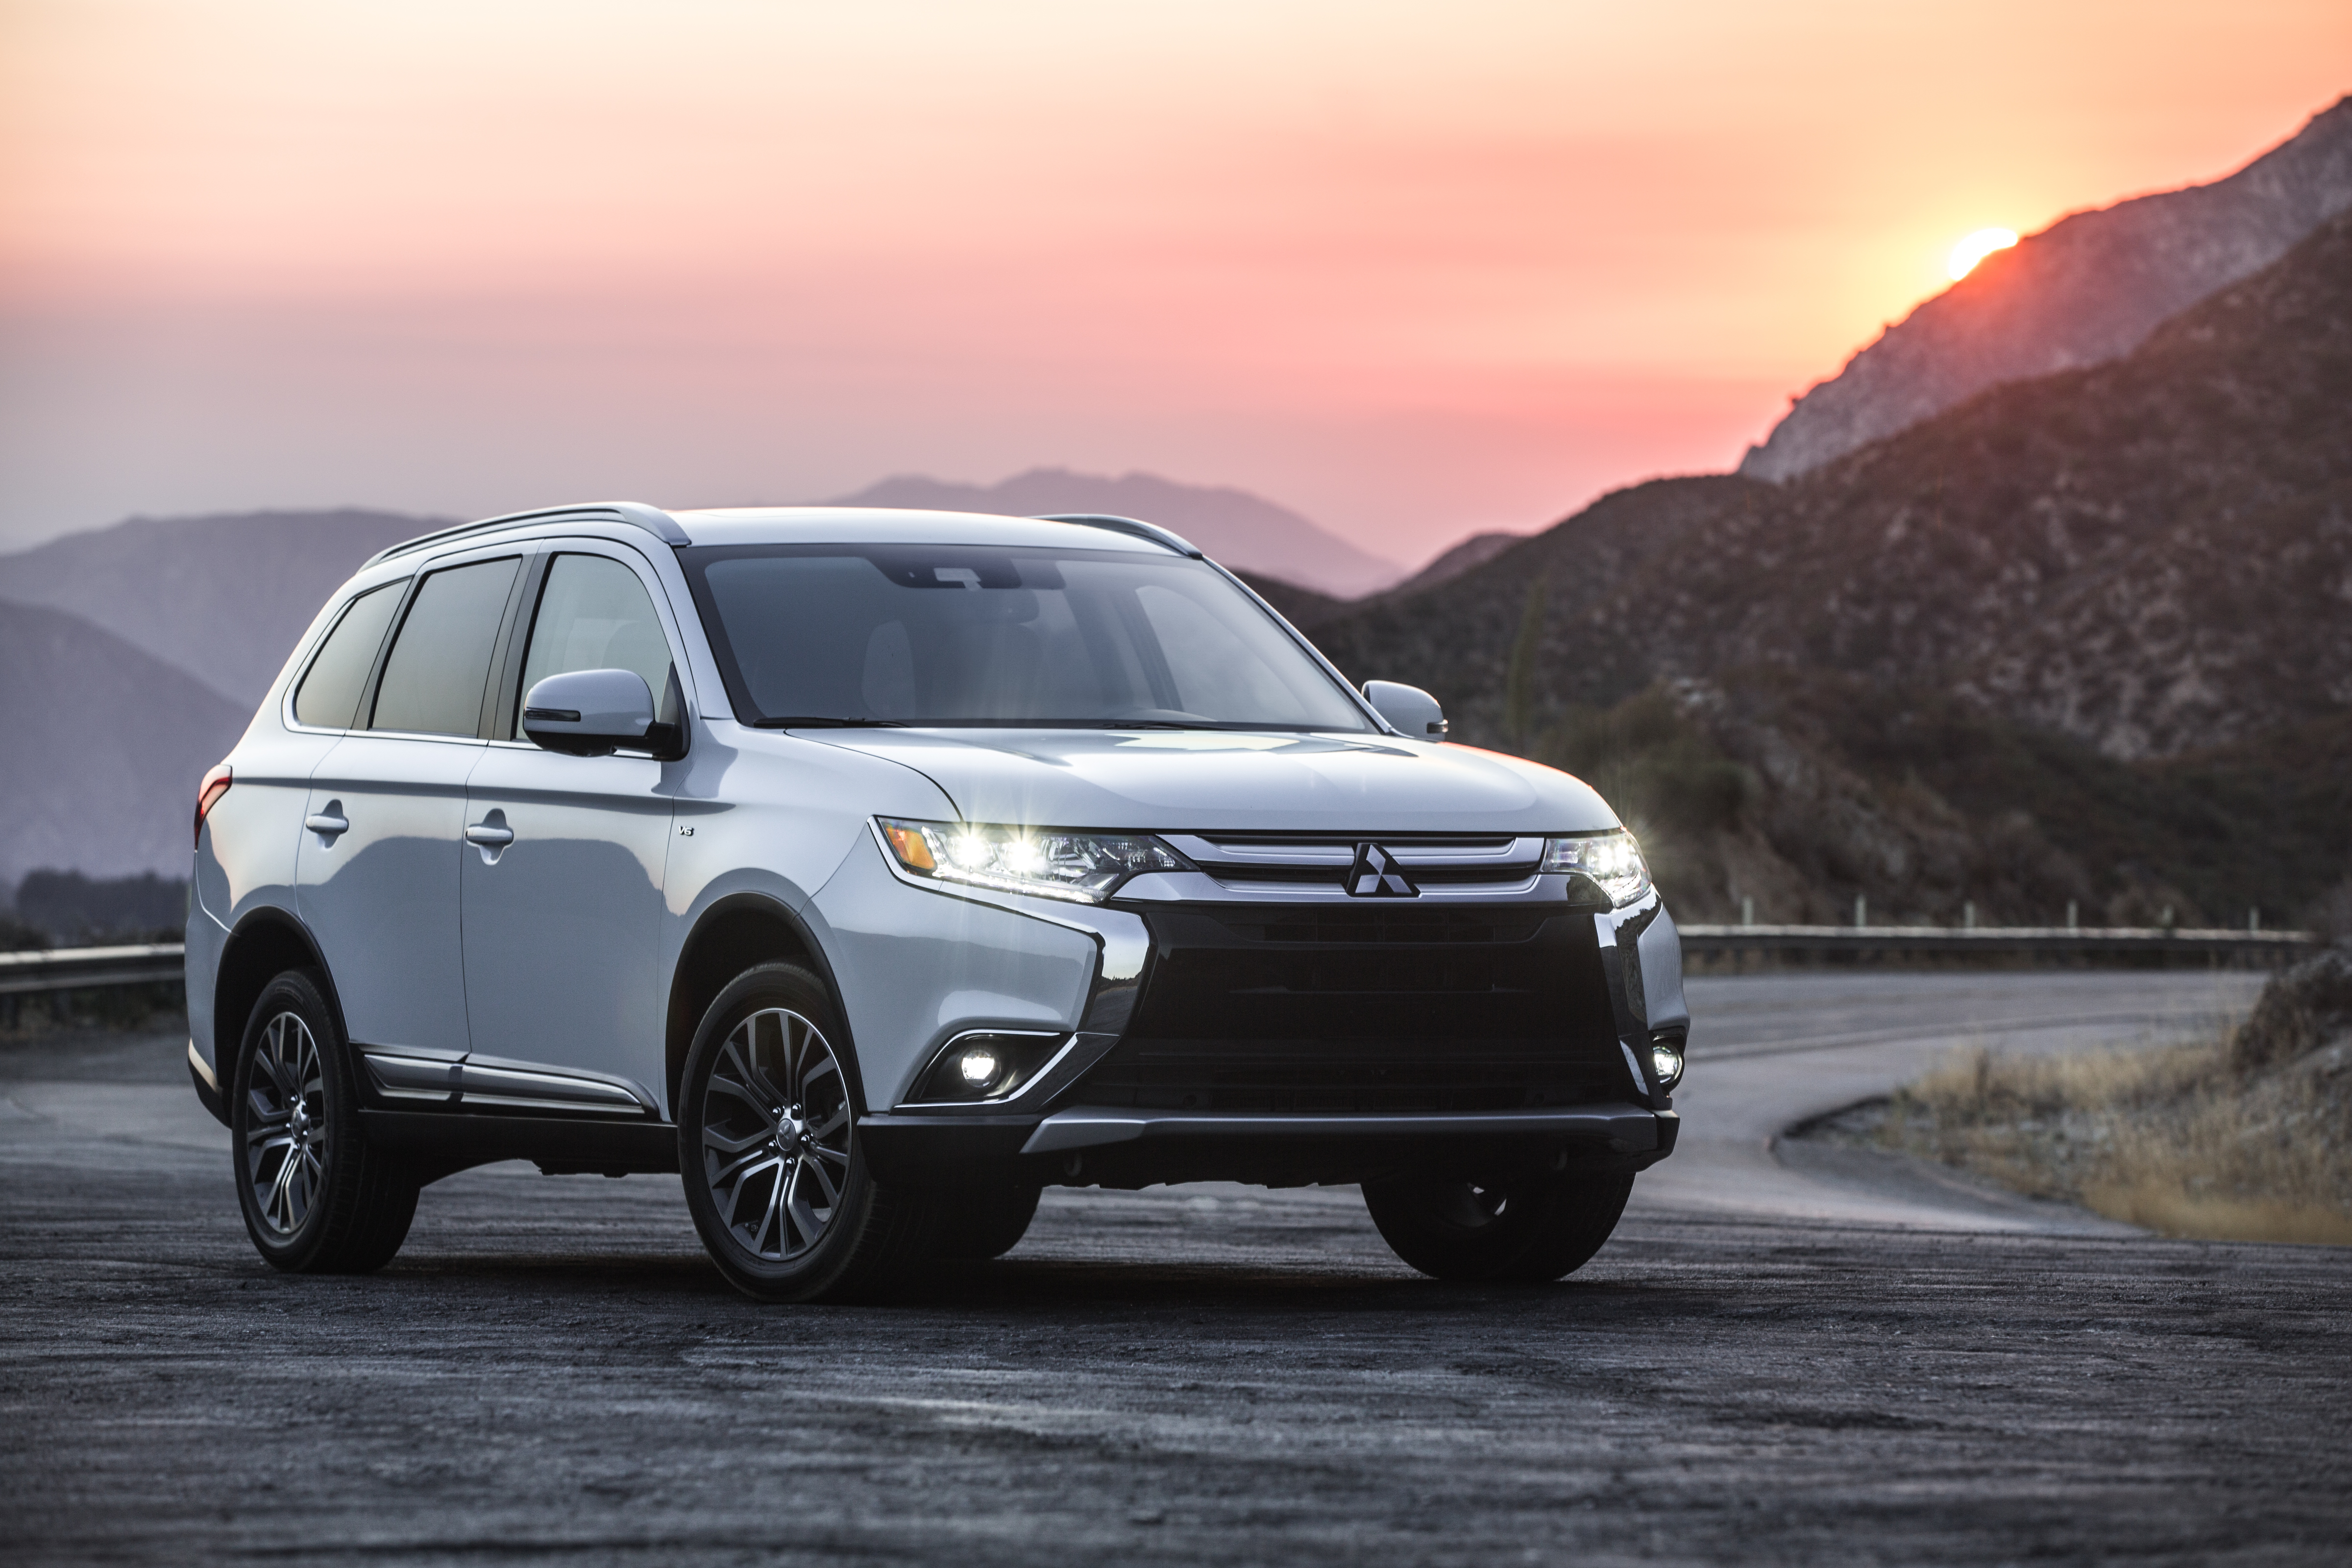 Mitsubishi Outlander suv photo